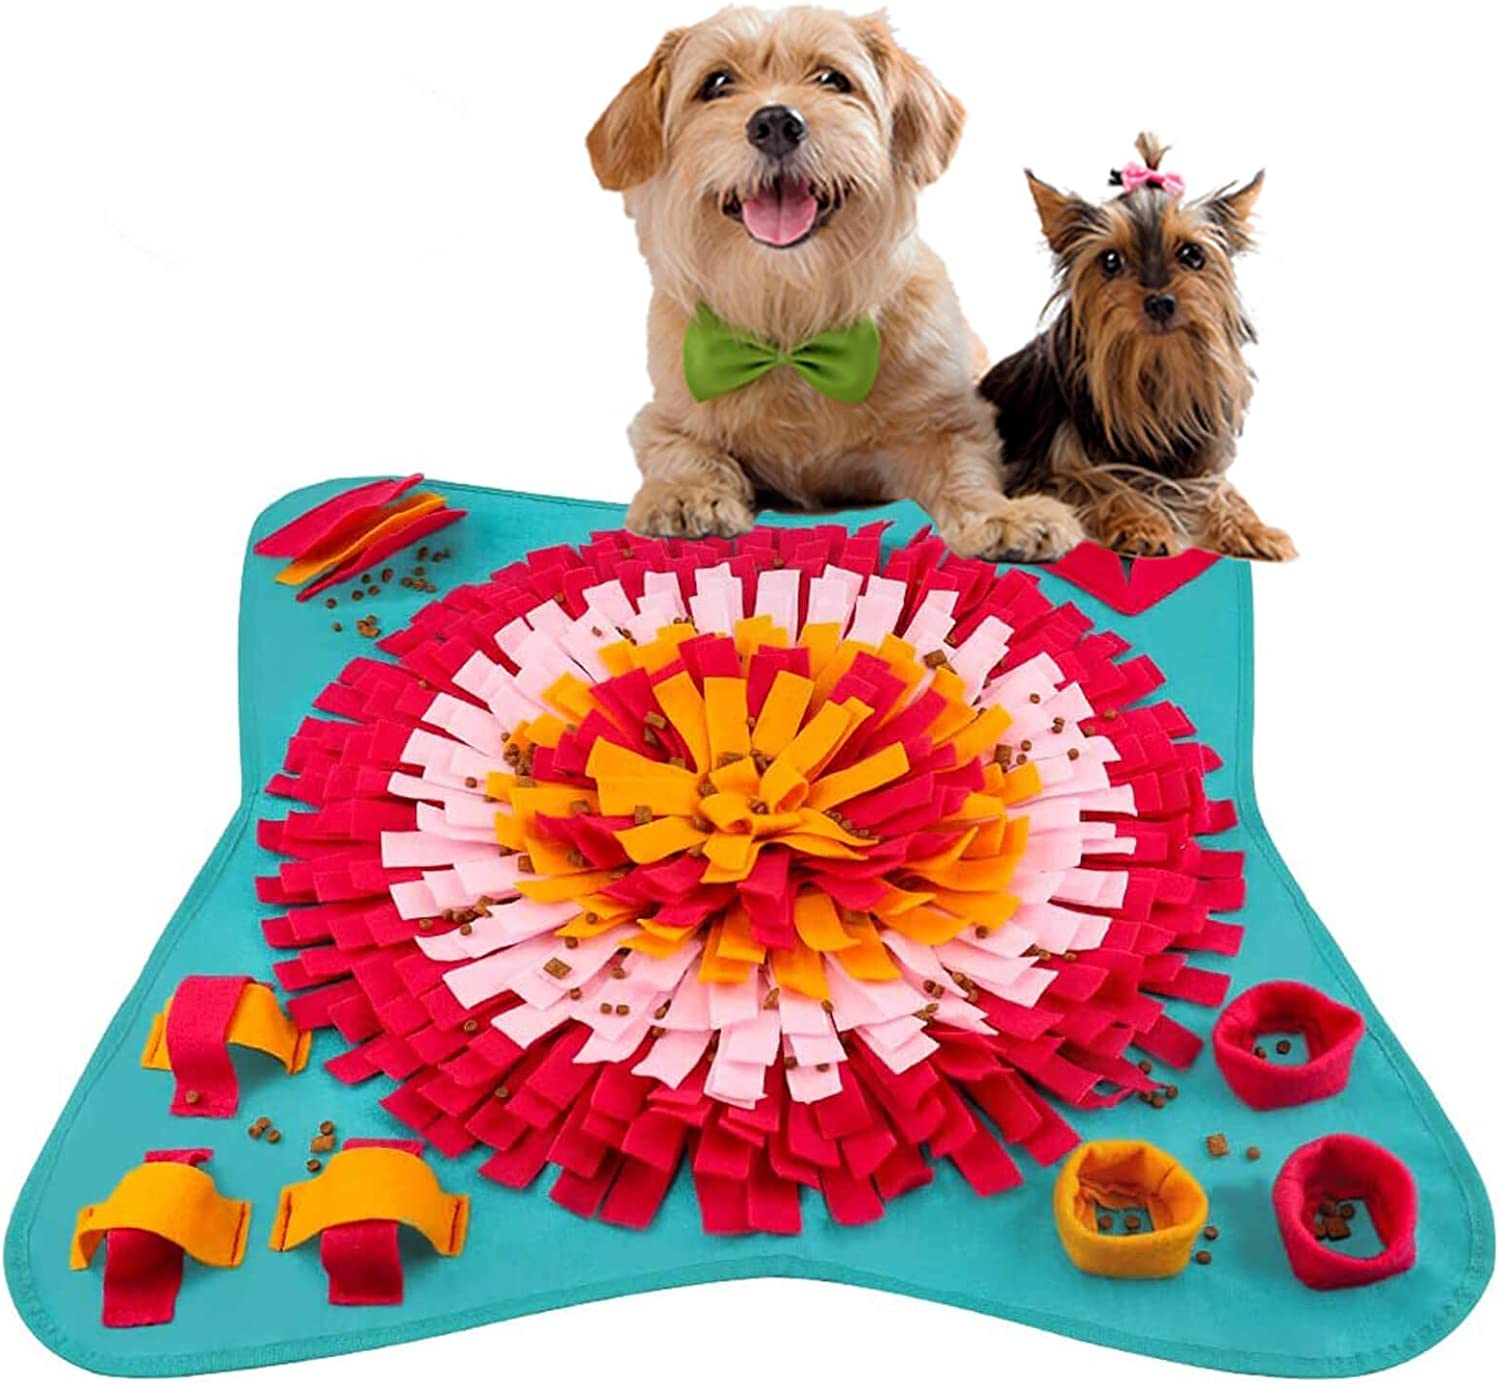 PJDH Snuffle Mat for Dogs, Interactive Dog Toys Slow Feeding Mat Nose Work Mat for Dogs